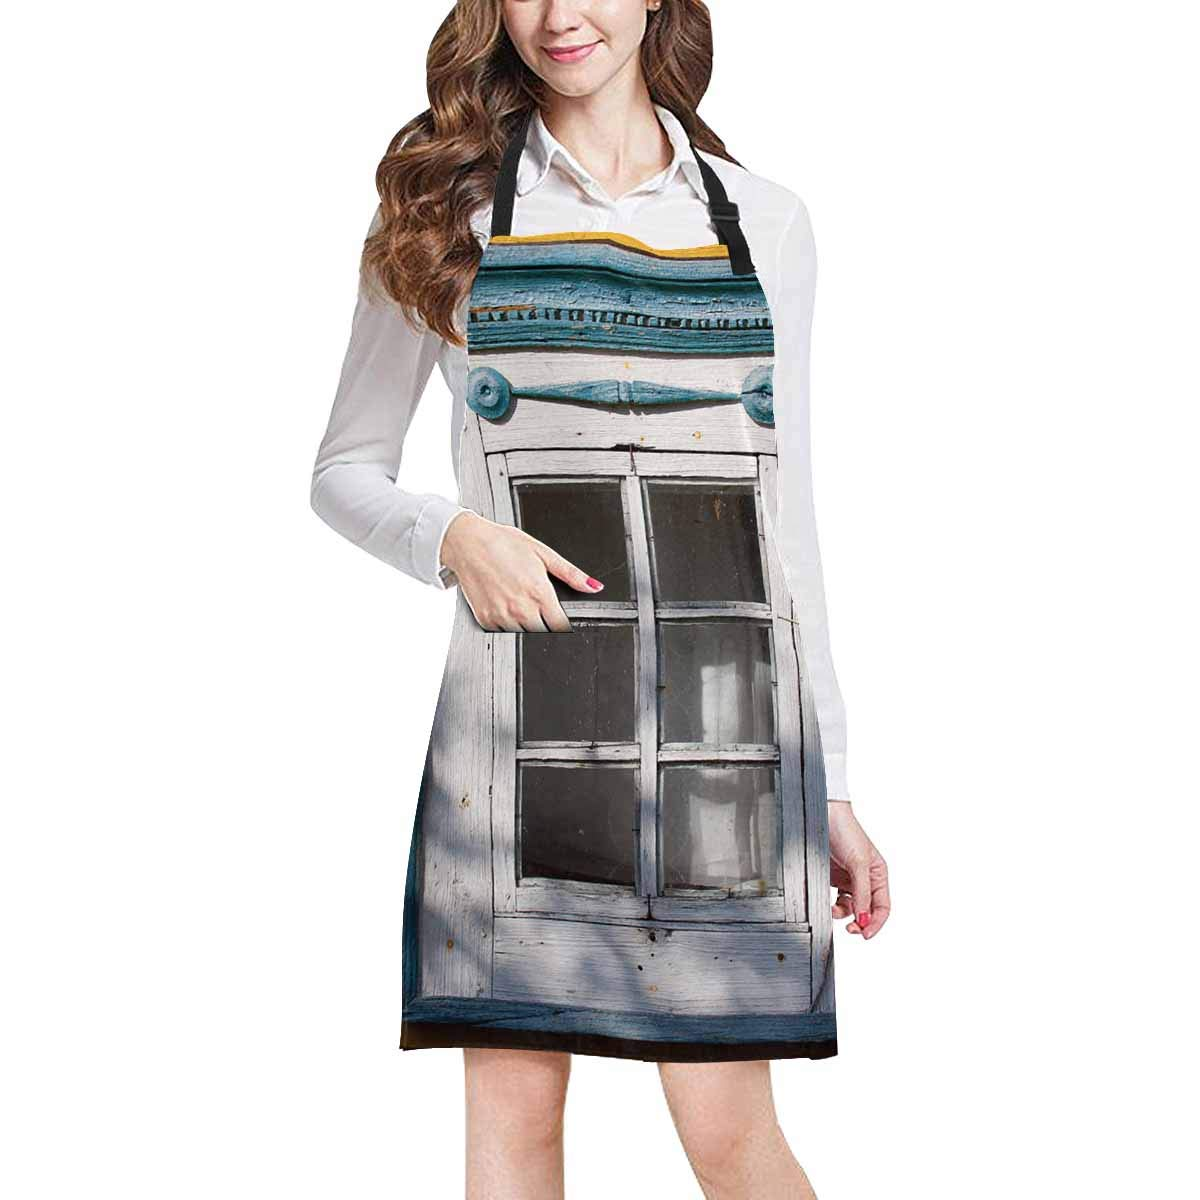 InterestPrint Traditional Lithuanian House Window Traditional Ornaments Chef Aprons Professional Kitchen Chef Bib Apron Pockets Adjustable Neck Strap, Plus Size